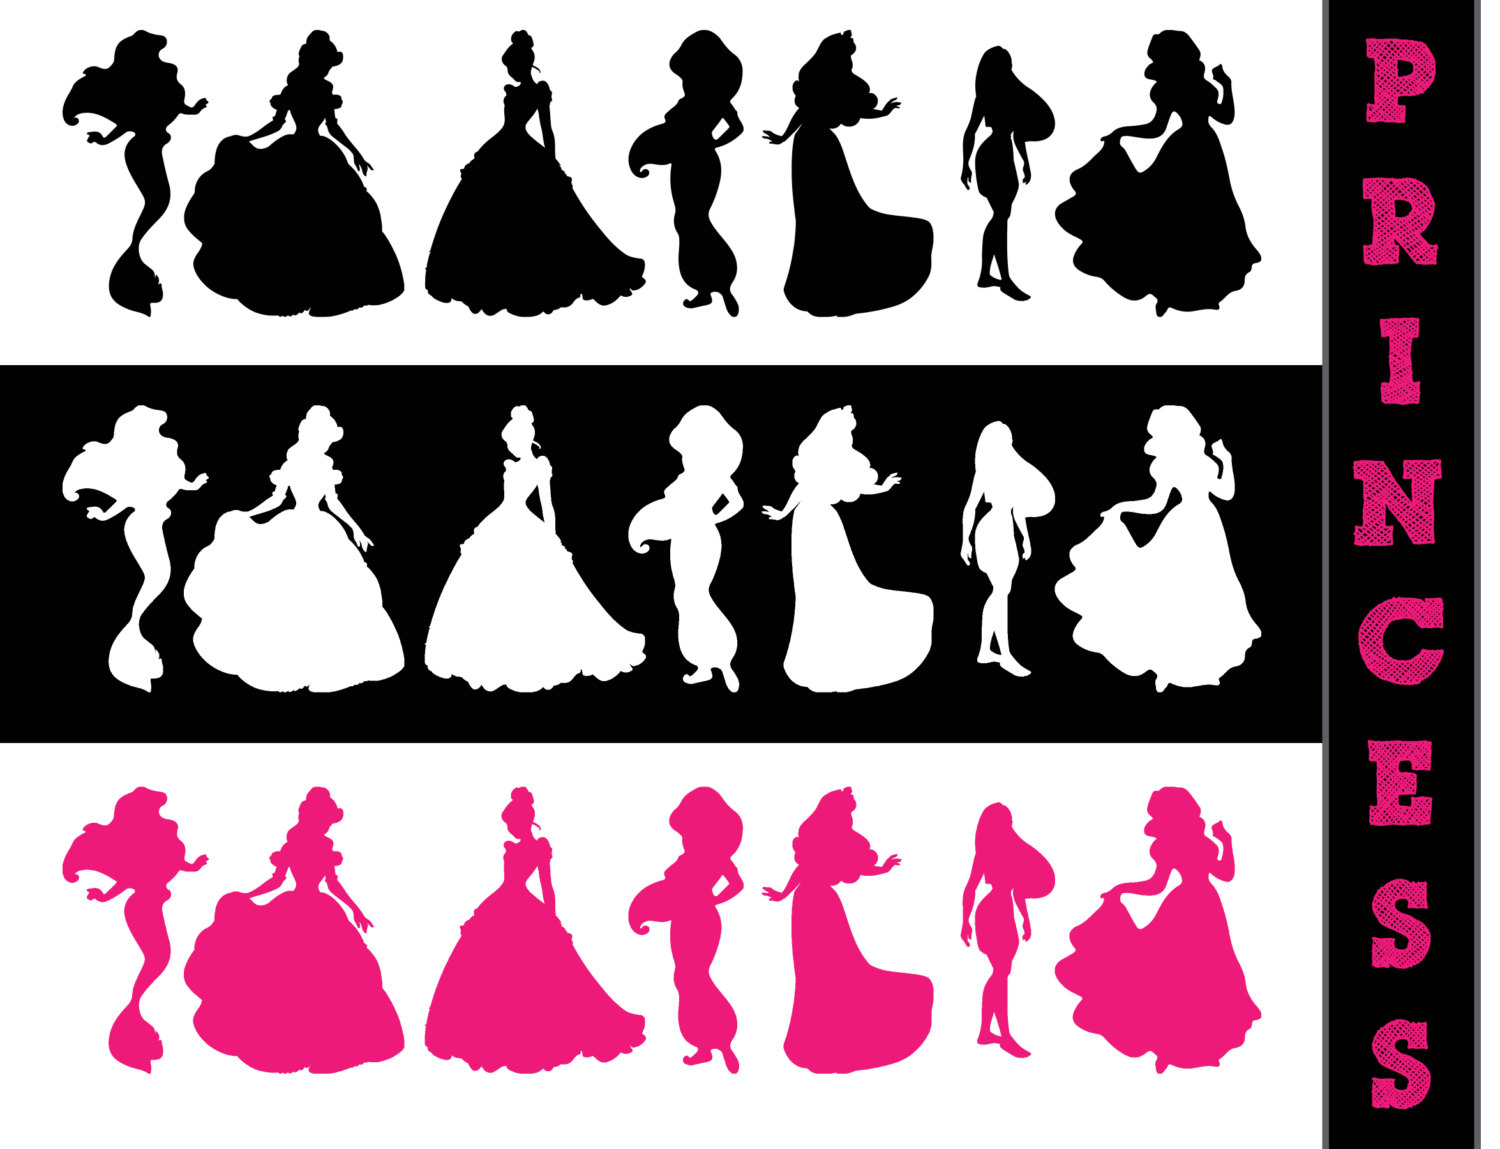 Princess belle silhouette clipart jpg freeuse Princess train silhouette clipart - ClipartFest jpg freeuse